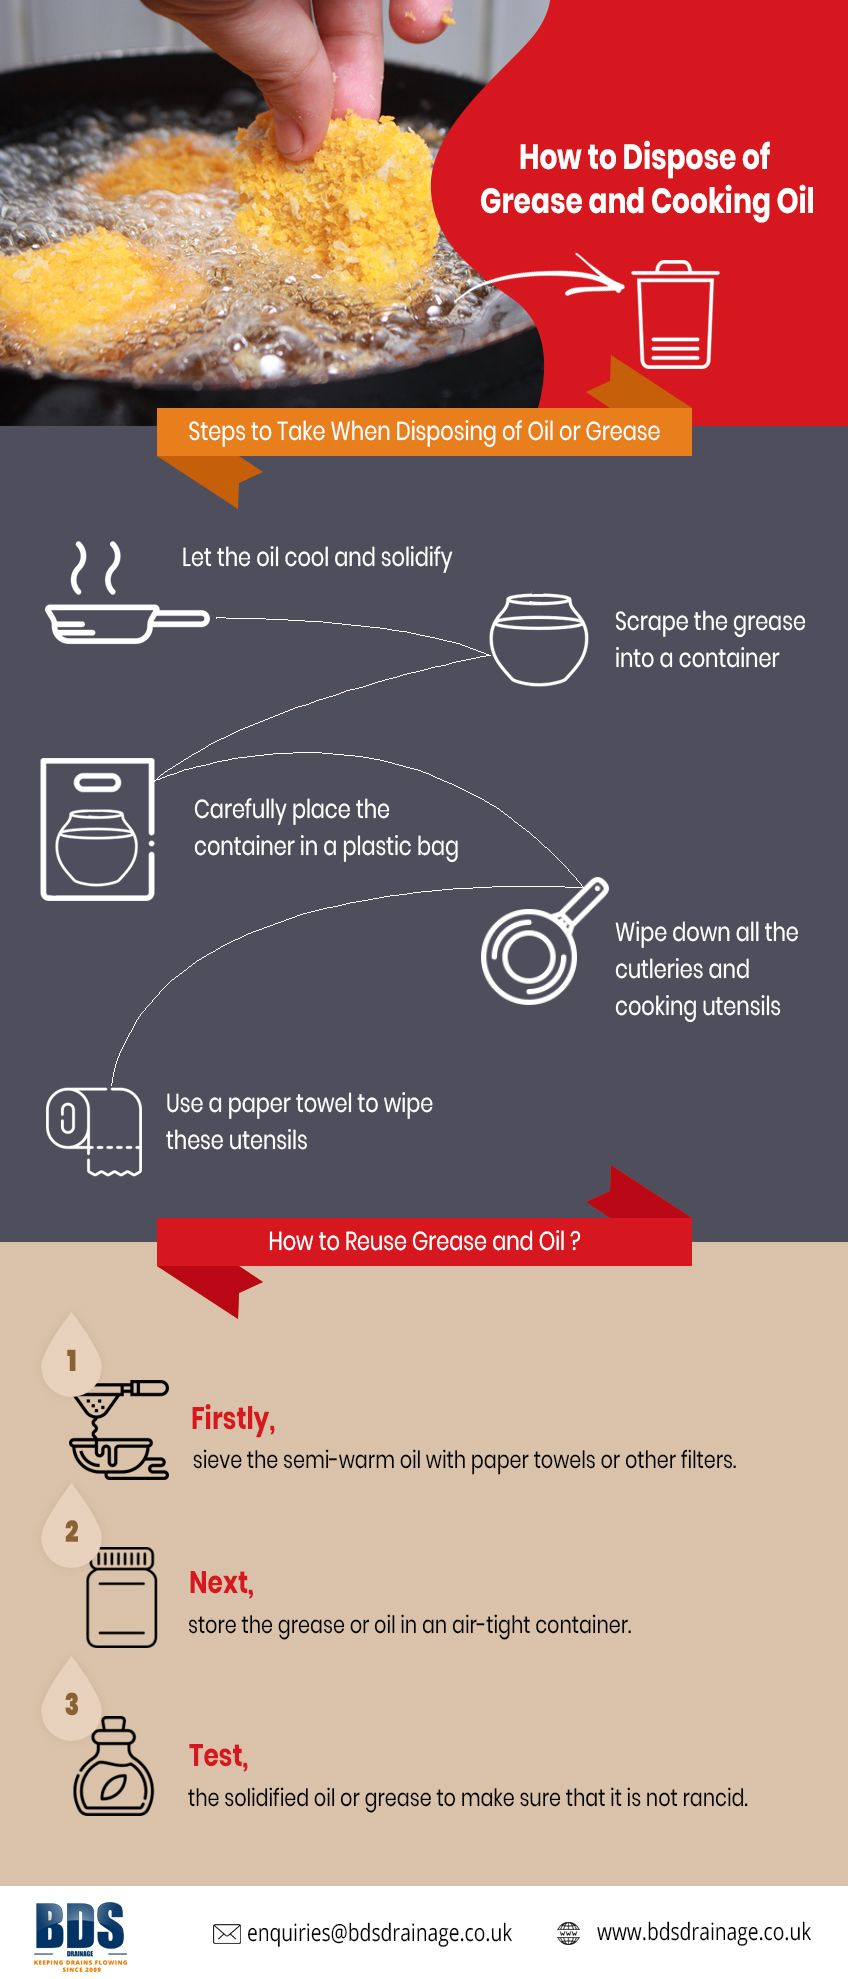 How To Dispose Of Grease And Cooking Oil